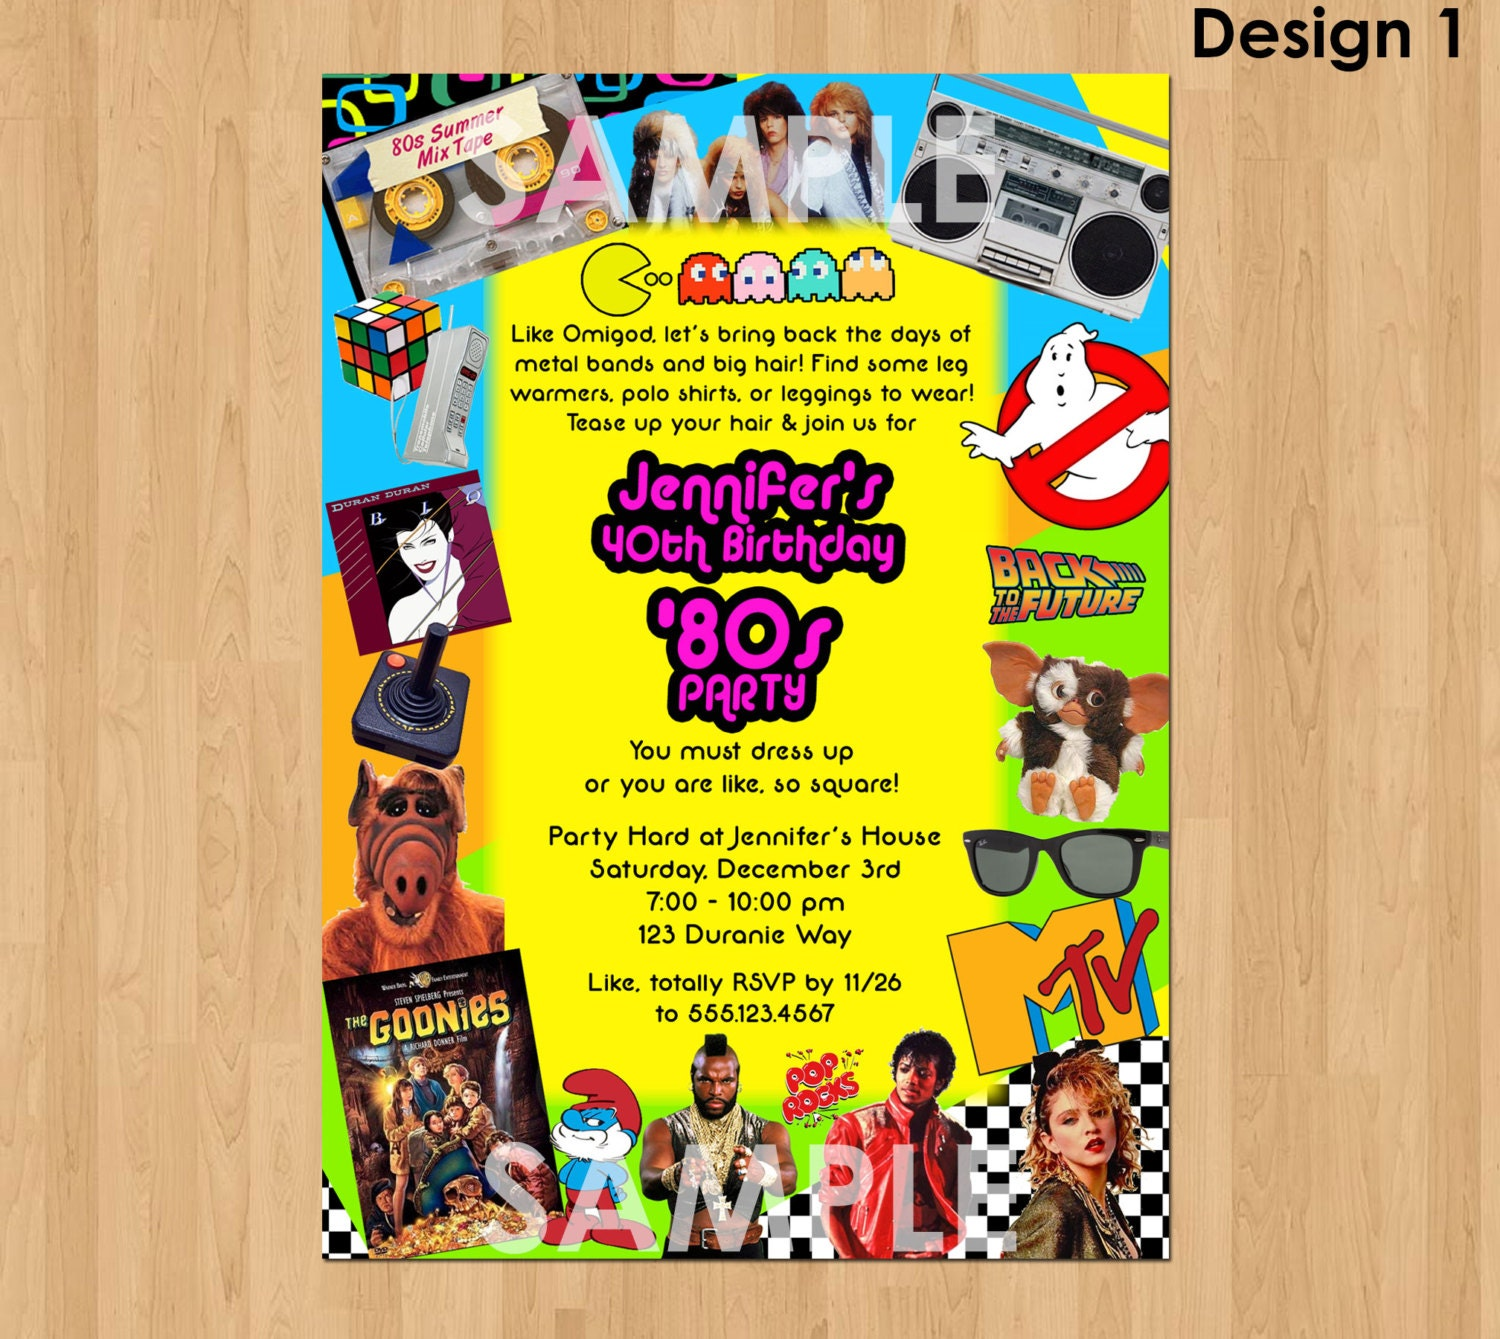 80s Birthday Invitation 80s Party Invitation 40th Birthday – 80s Theme Party Invitations